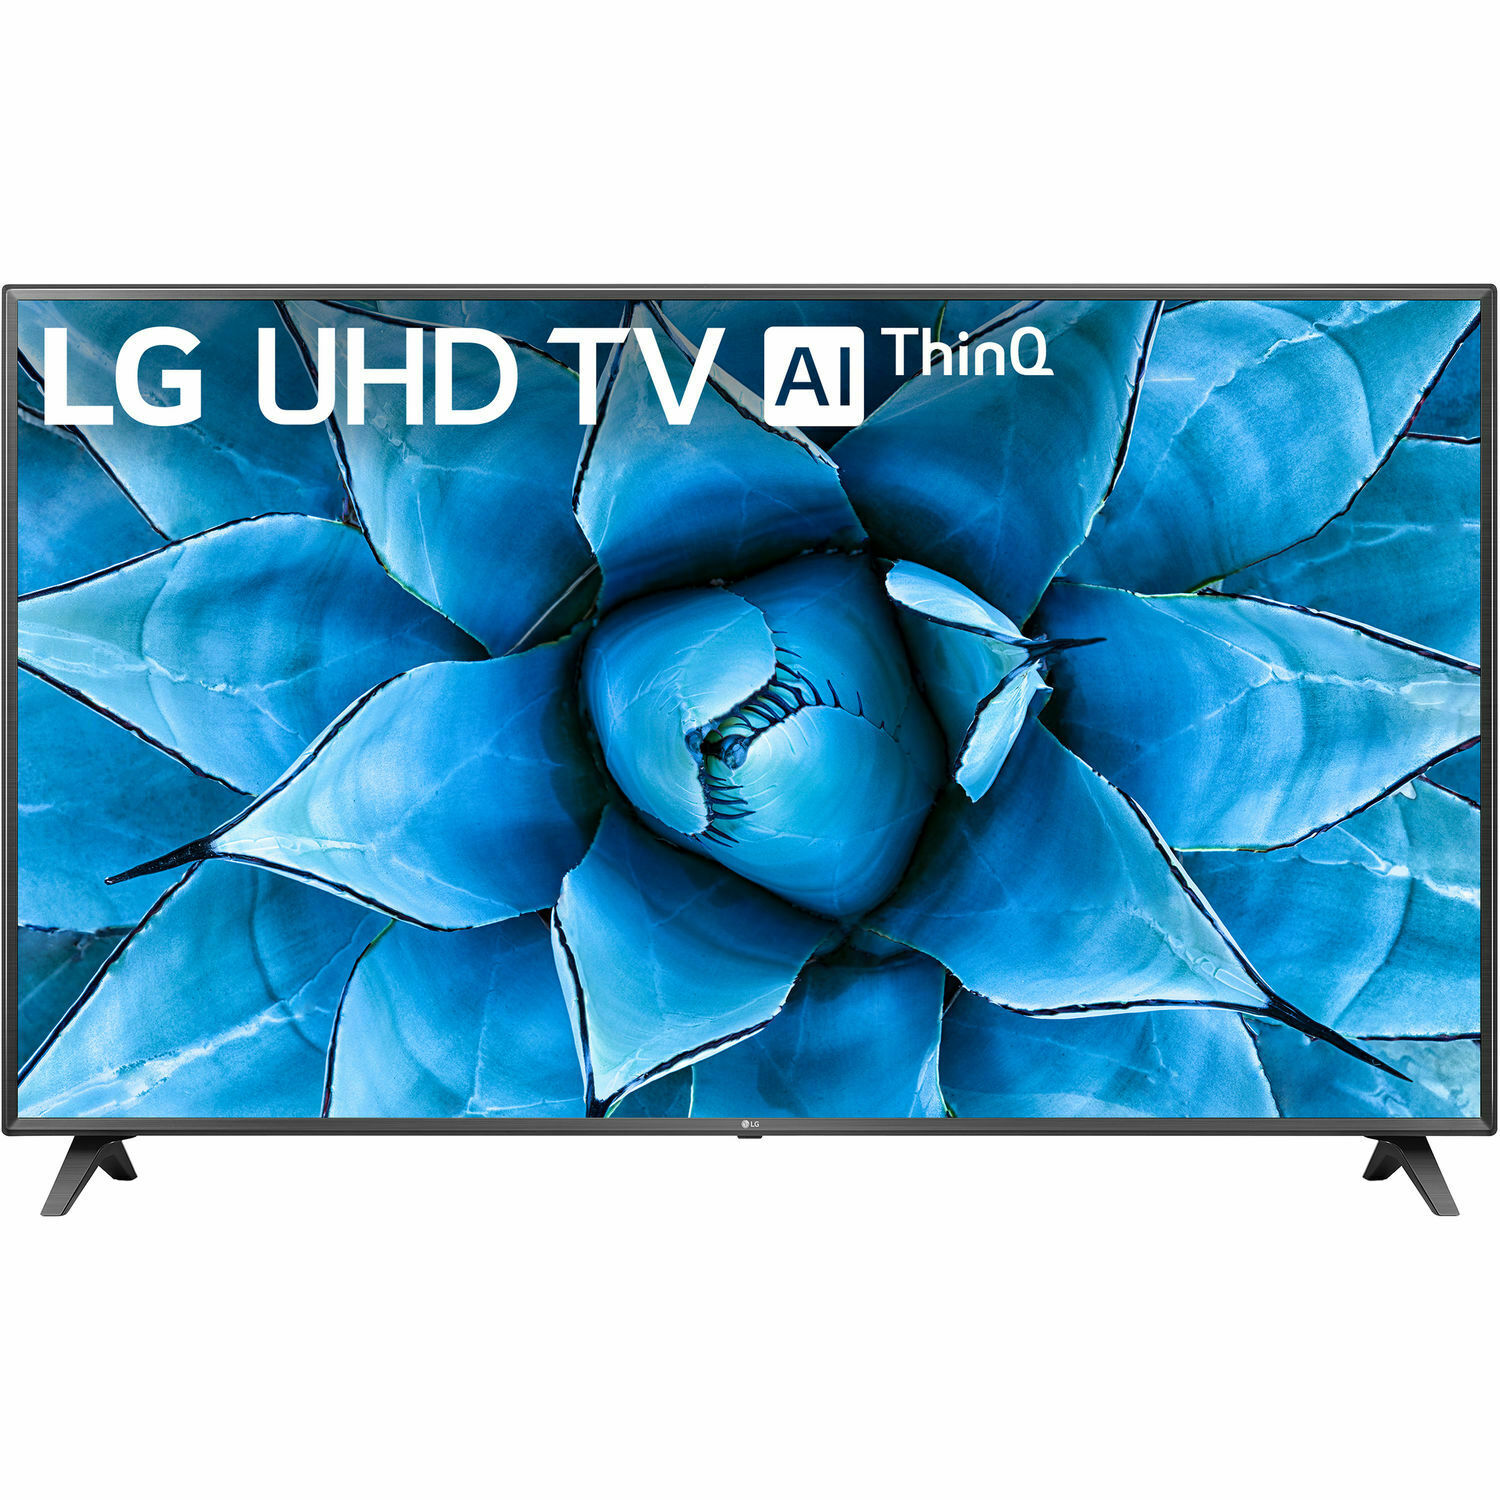 75UN7370PUEAUS electronic_express LG 75 4K UHD HDR Smart TV 3 HDMI 2 USB Magic Remote 2020 Model *75UN7370